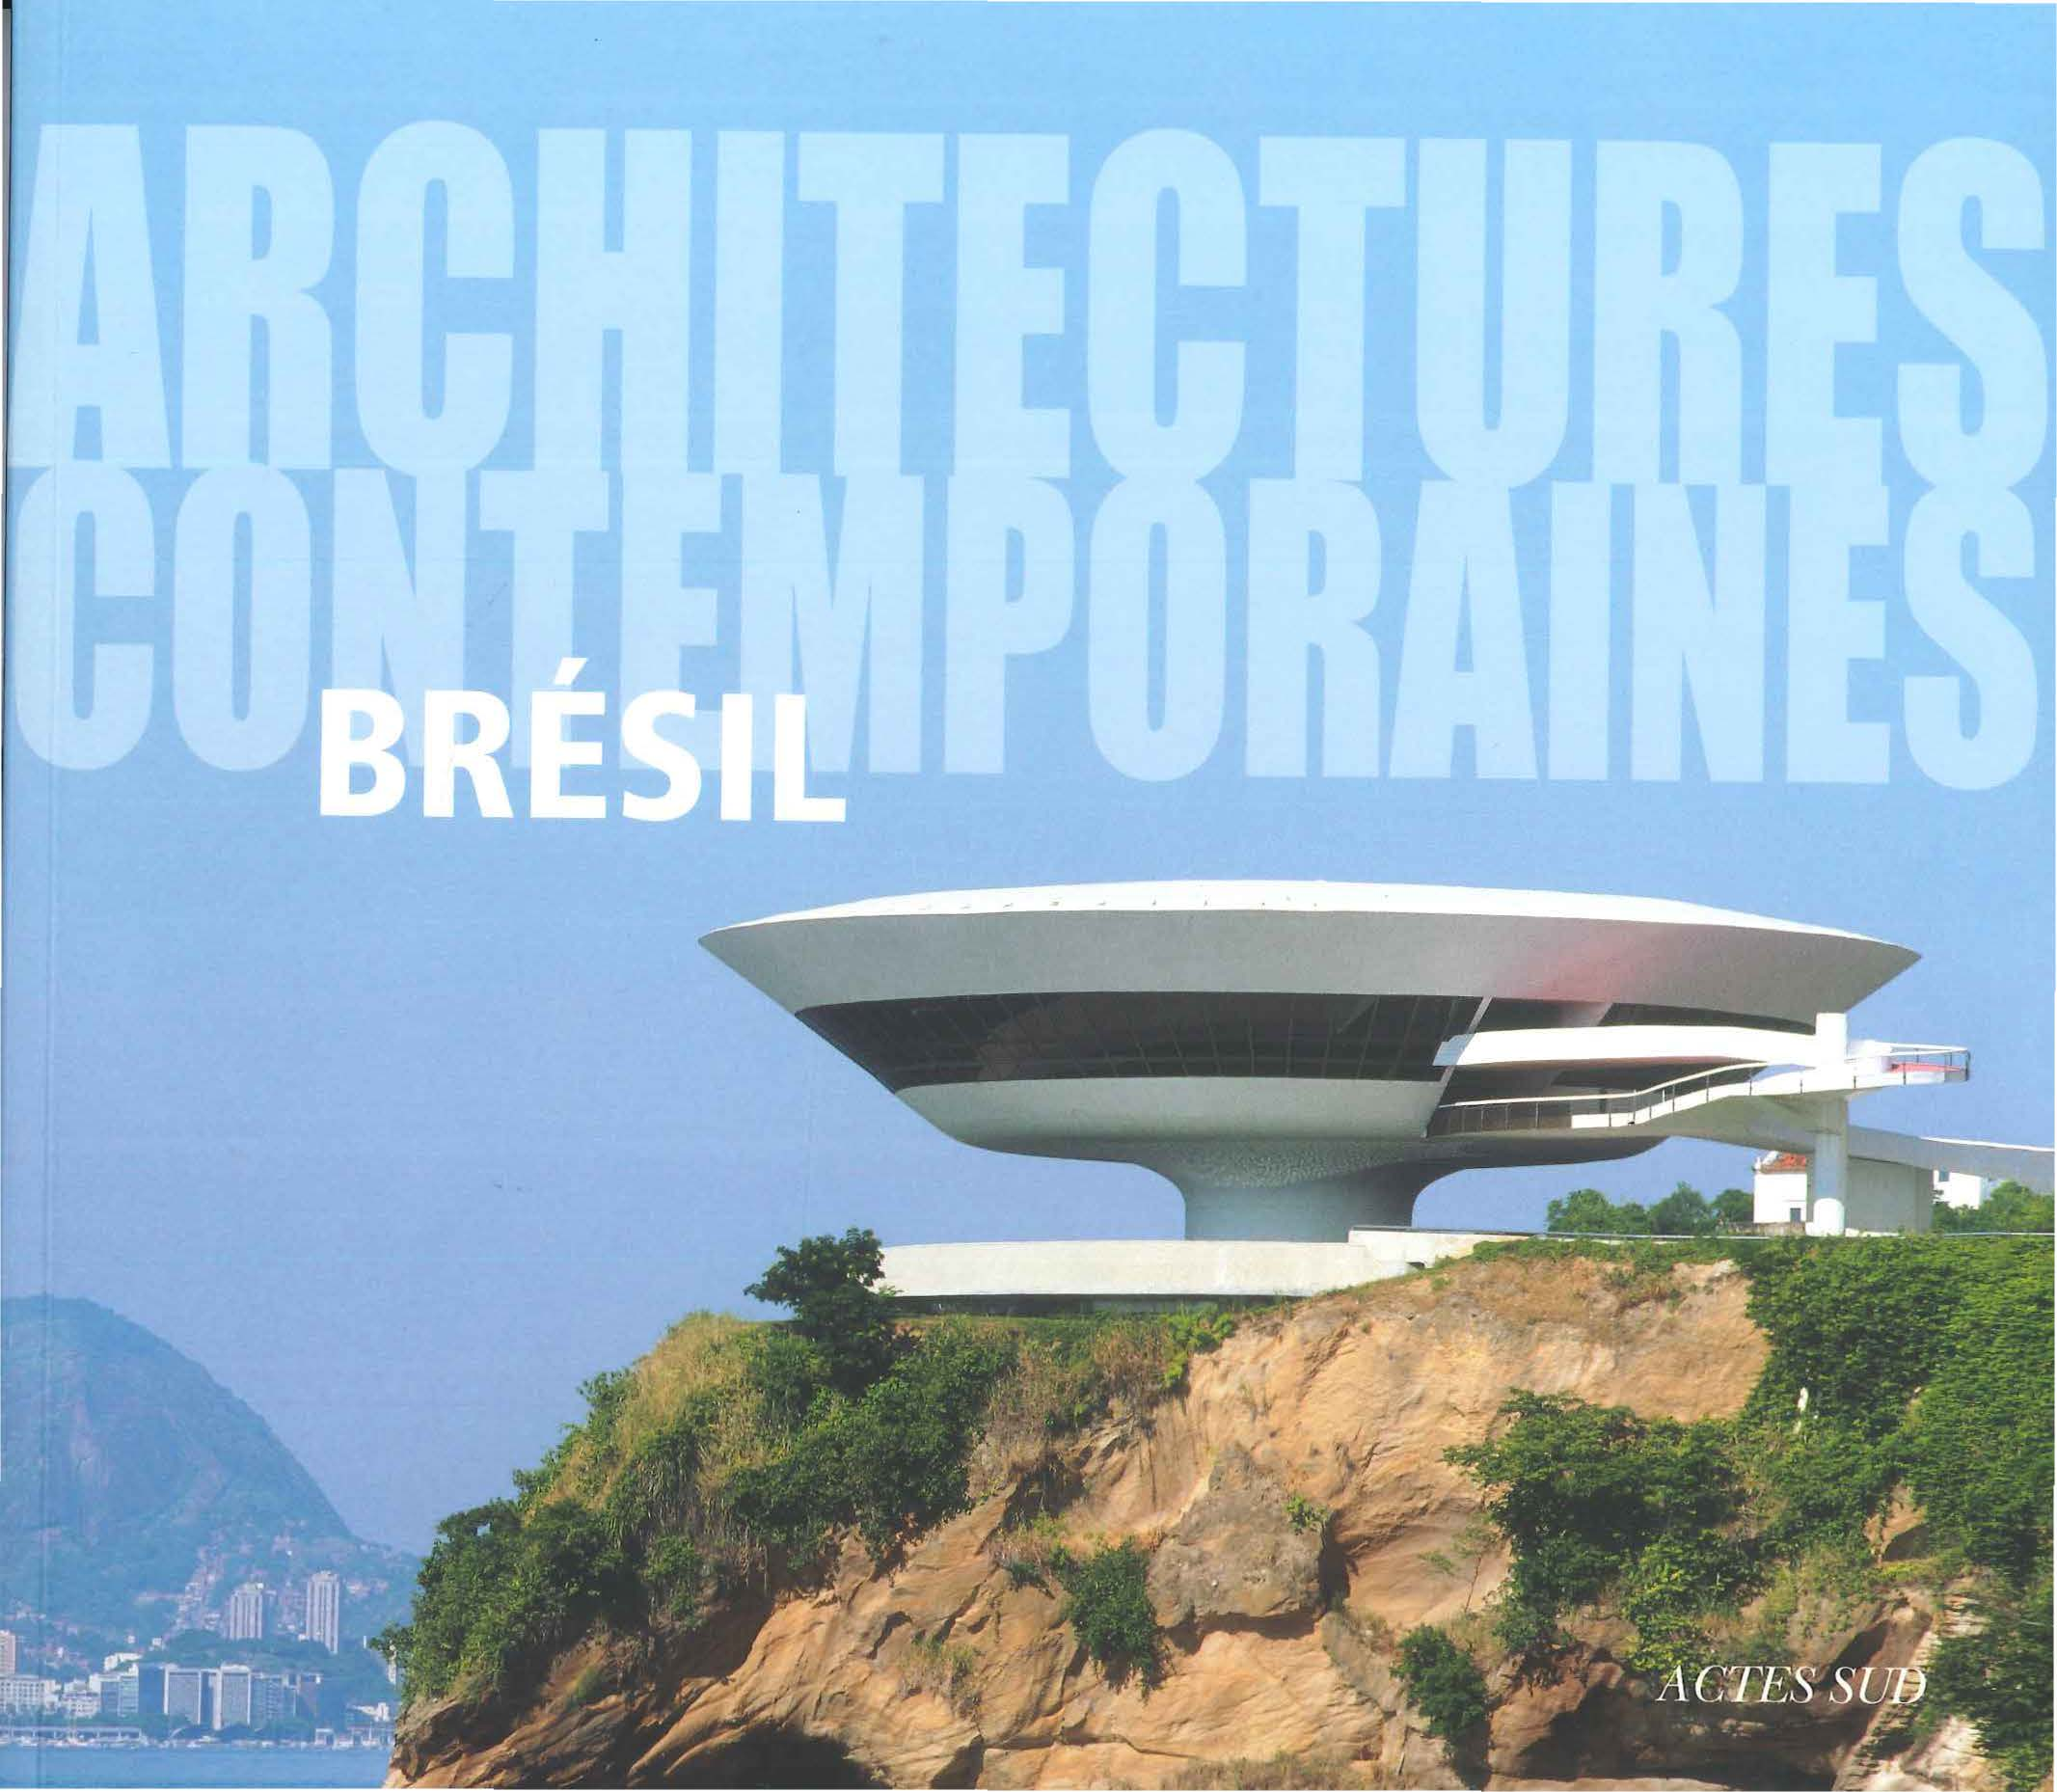 Architectures contemporaines - BRESIL